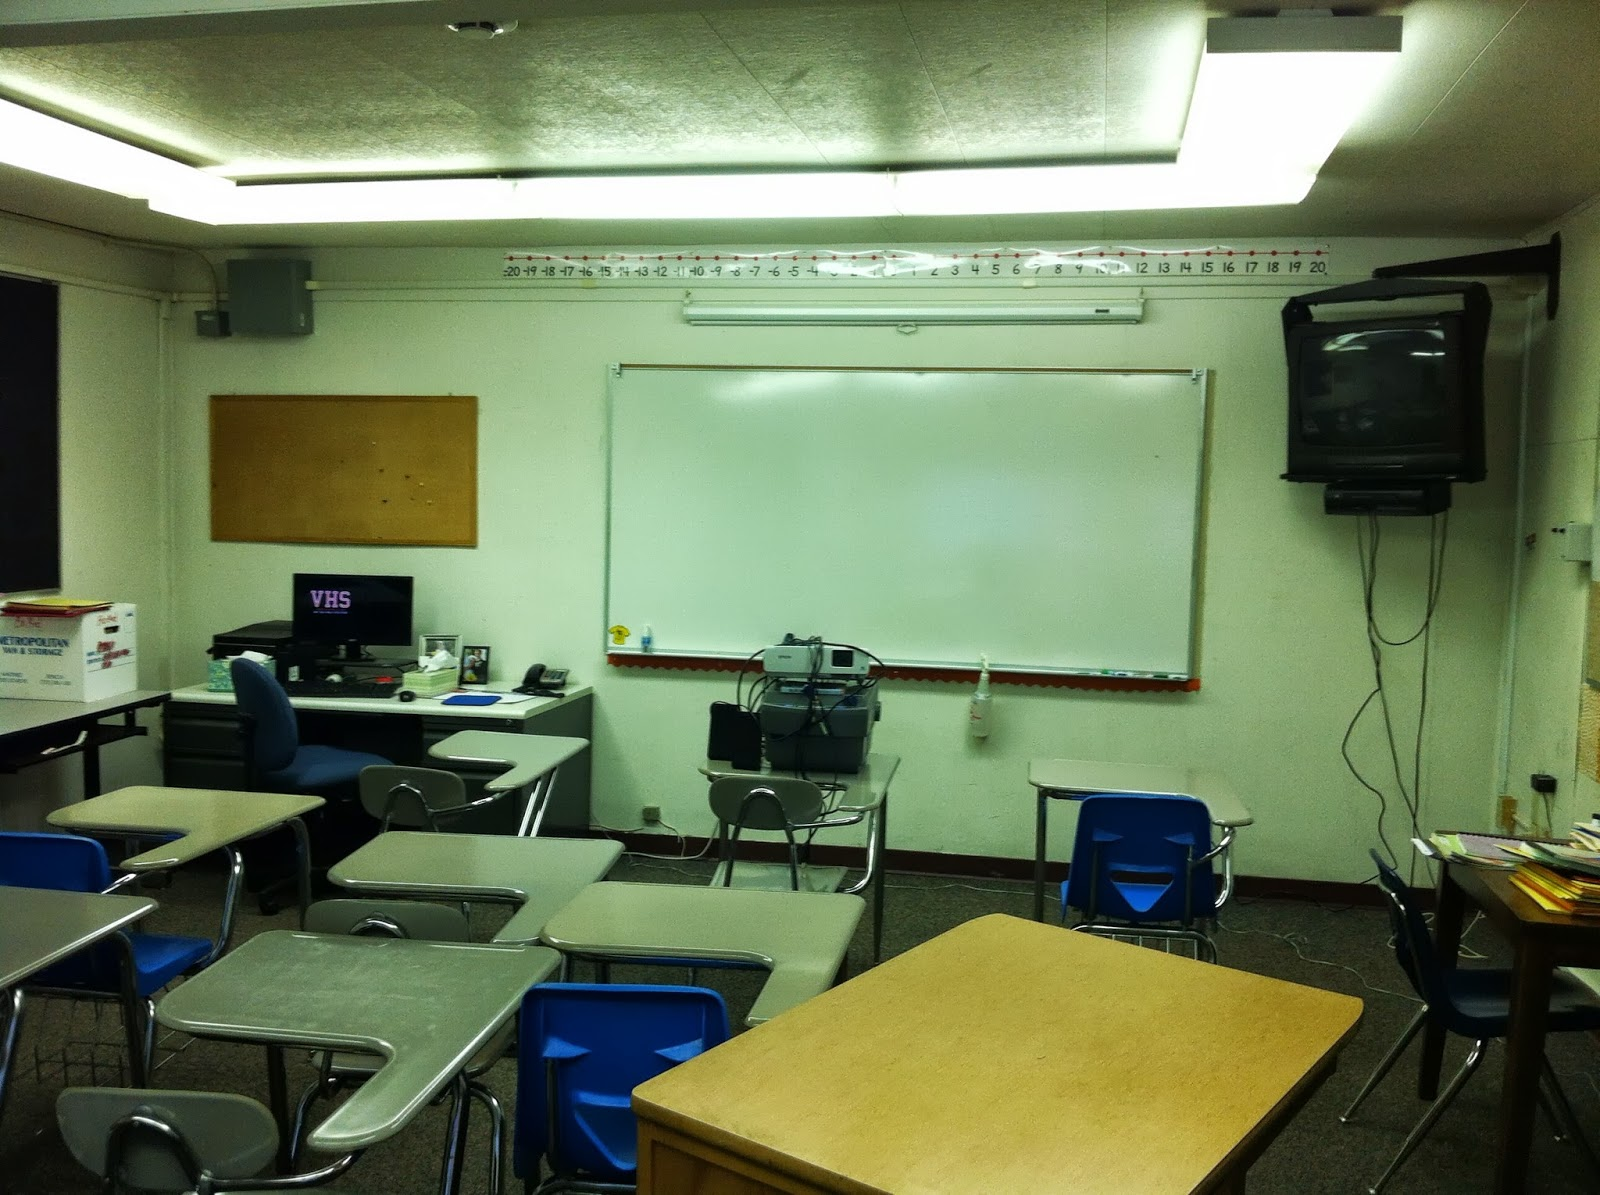 Definitely need more white board and some cords for the projector.